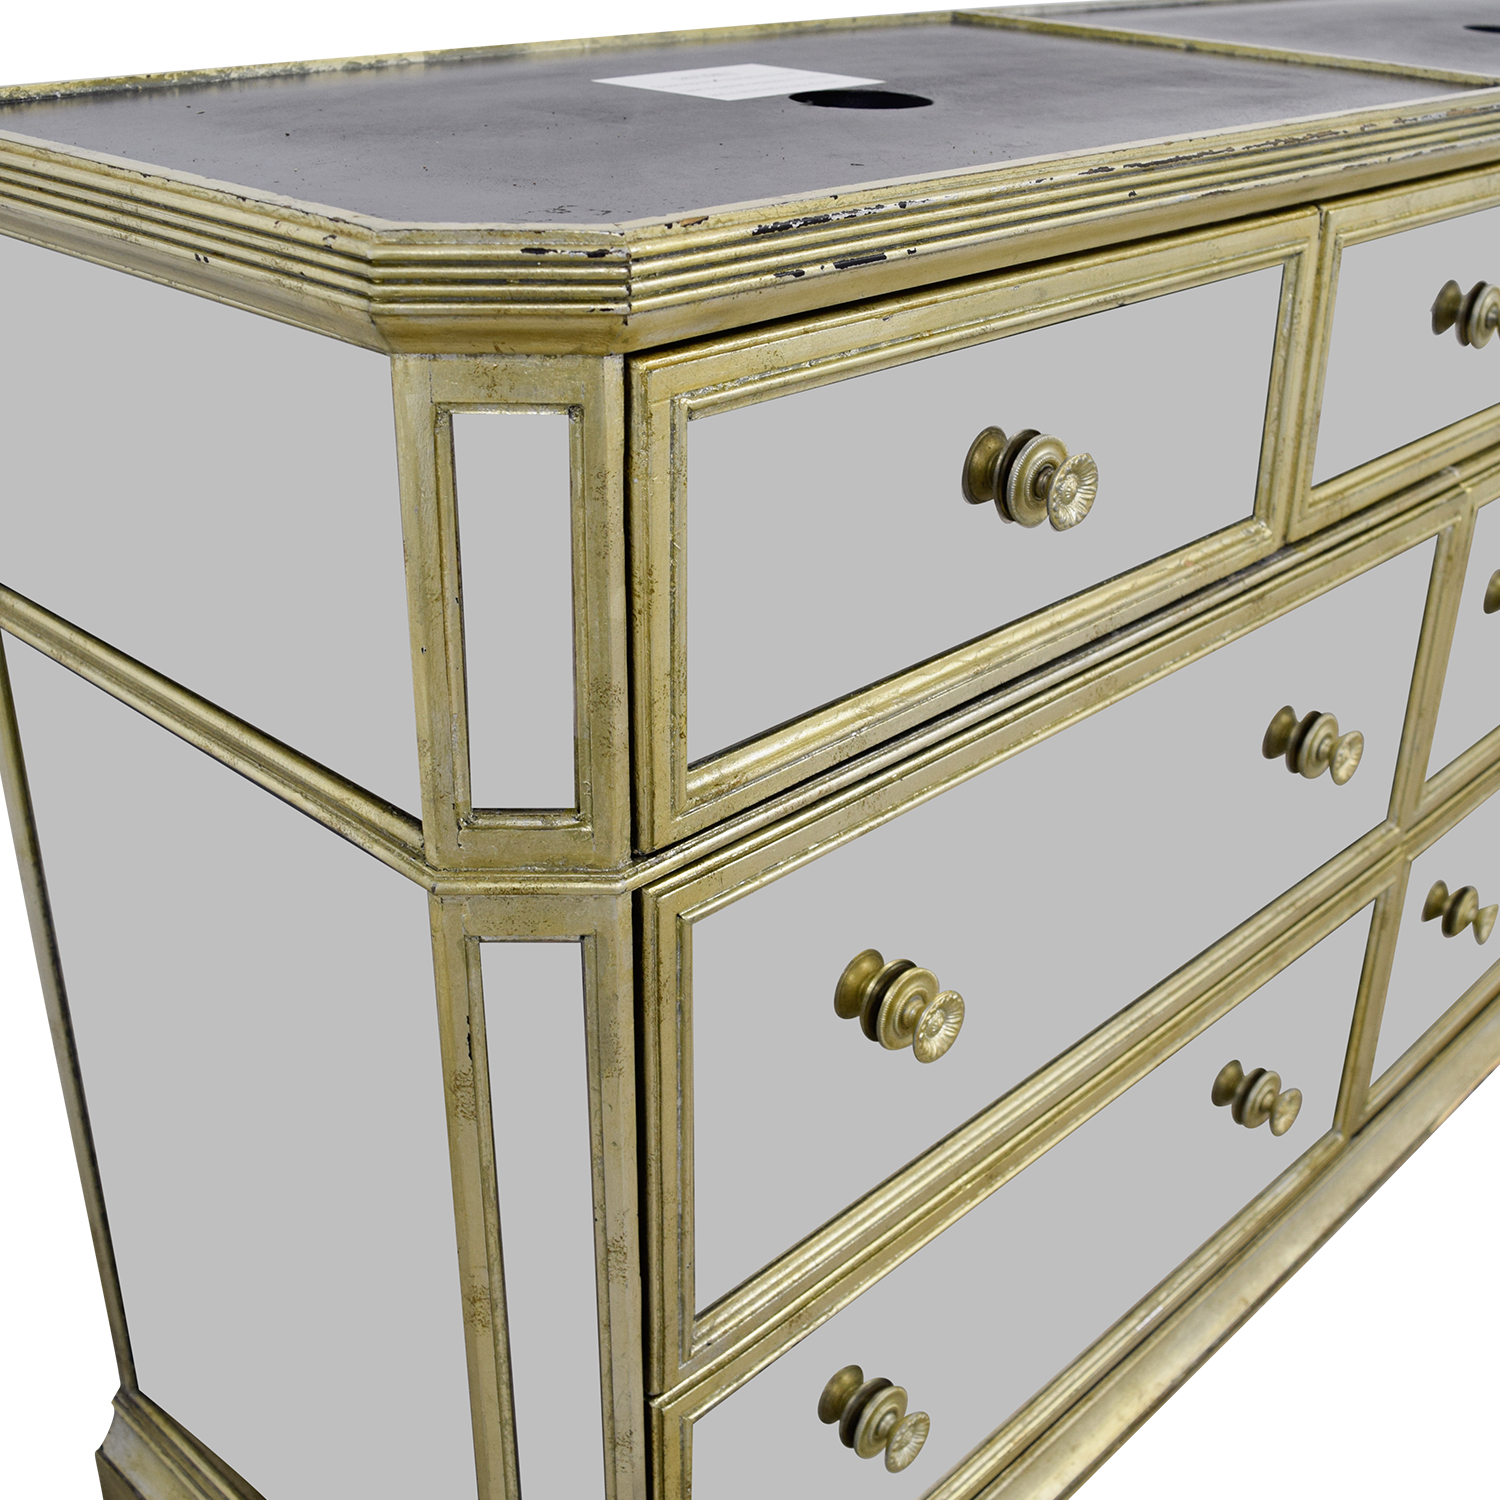 Marais Marais Seven-Drawer Mirrored Dresser used